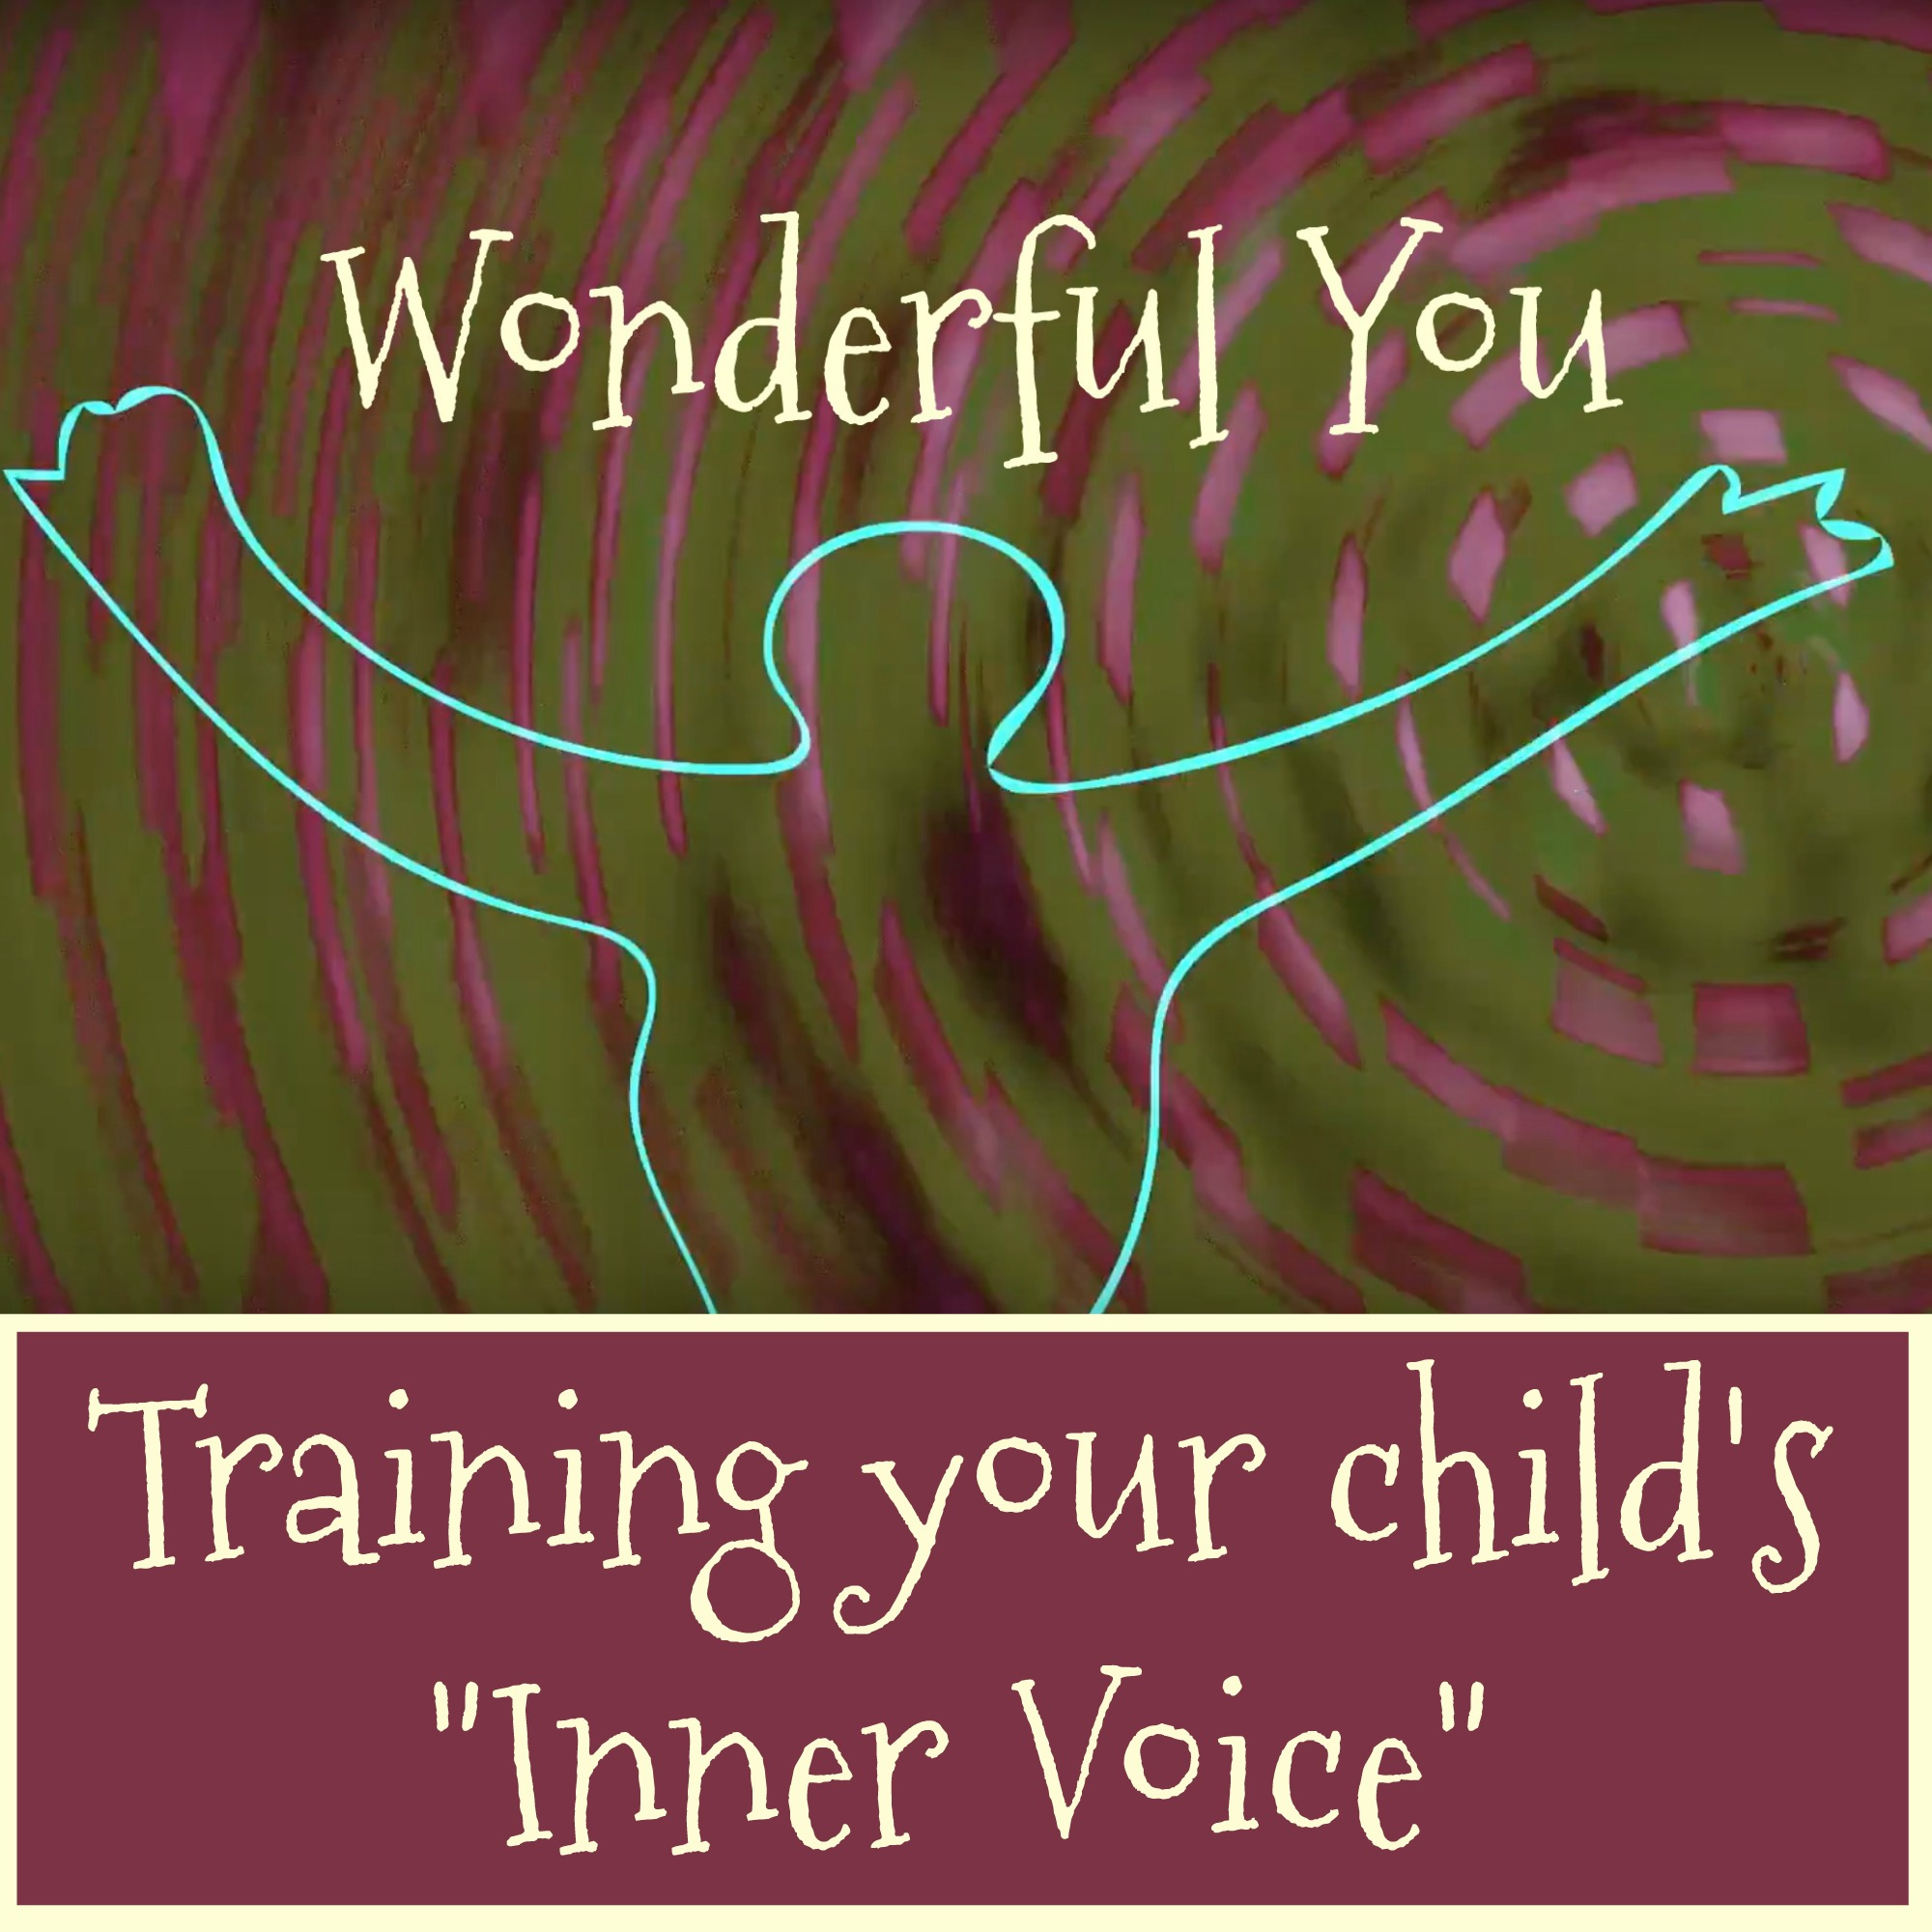 Train your child's inner voice